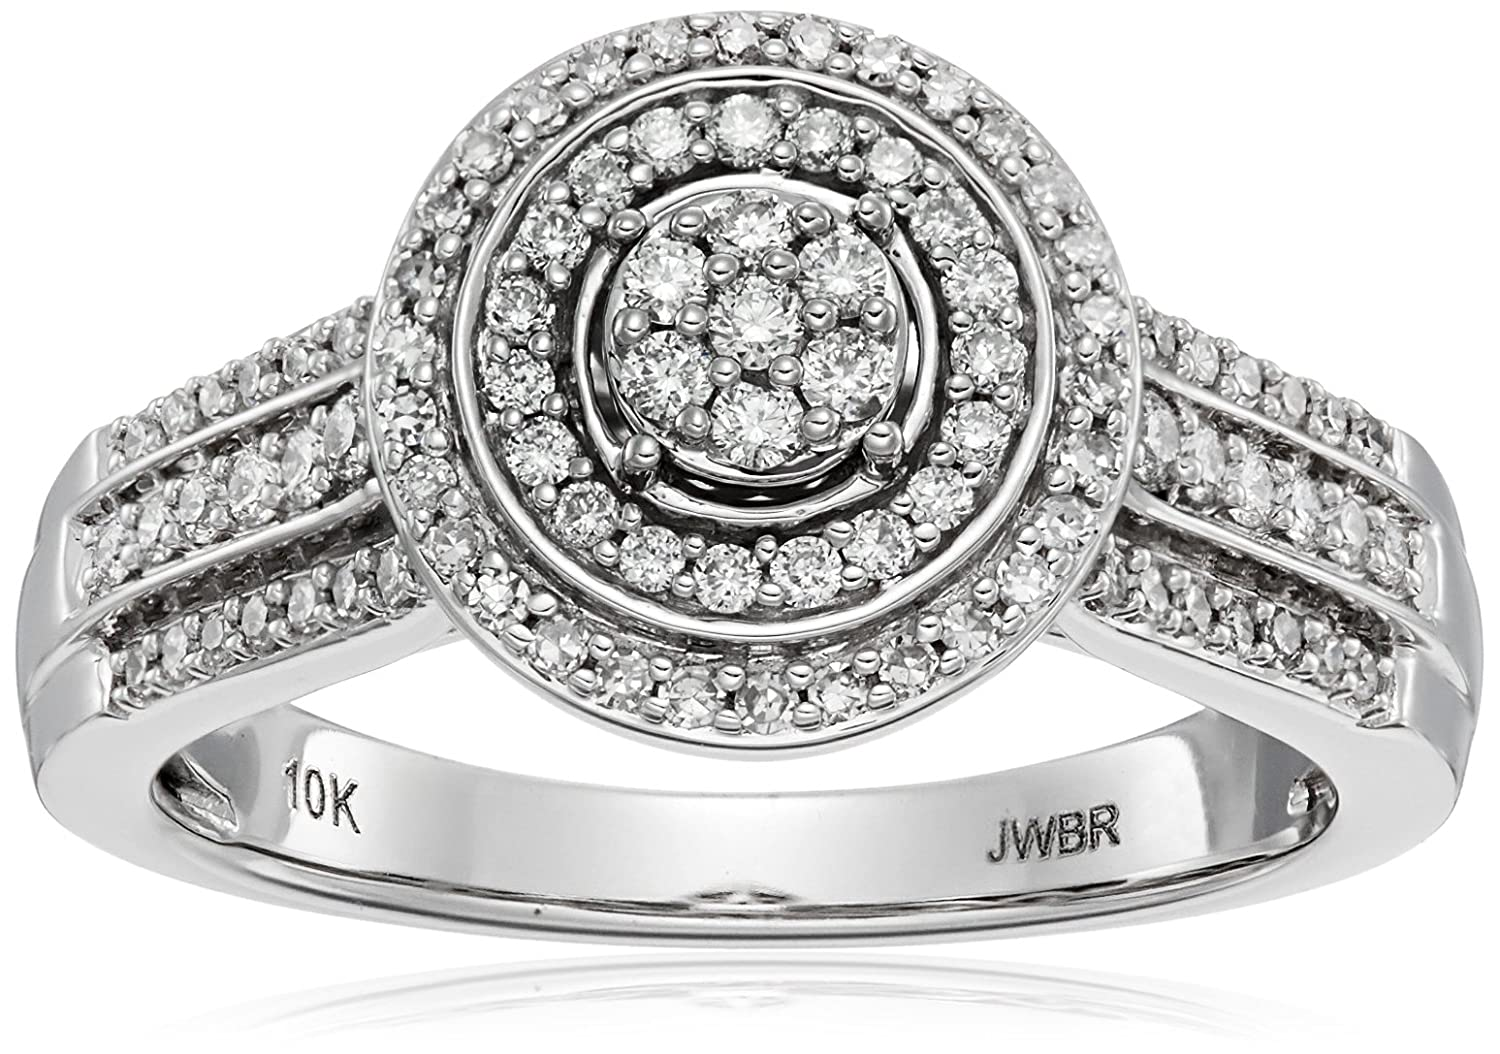 10kt White Gold Diamond 7 Stone Cluster Ring (1/2cttw, H-I Color, I1-I2 Clarity)